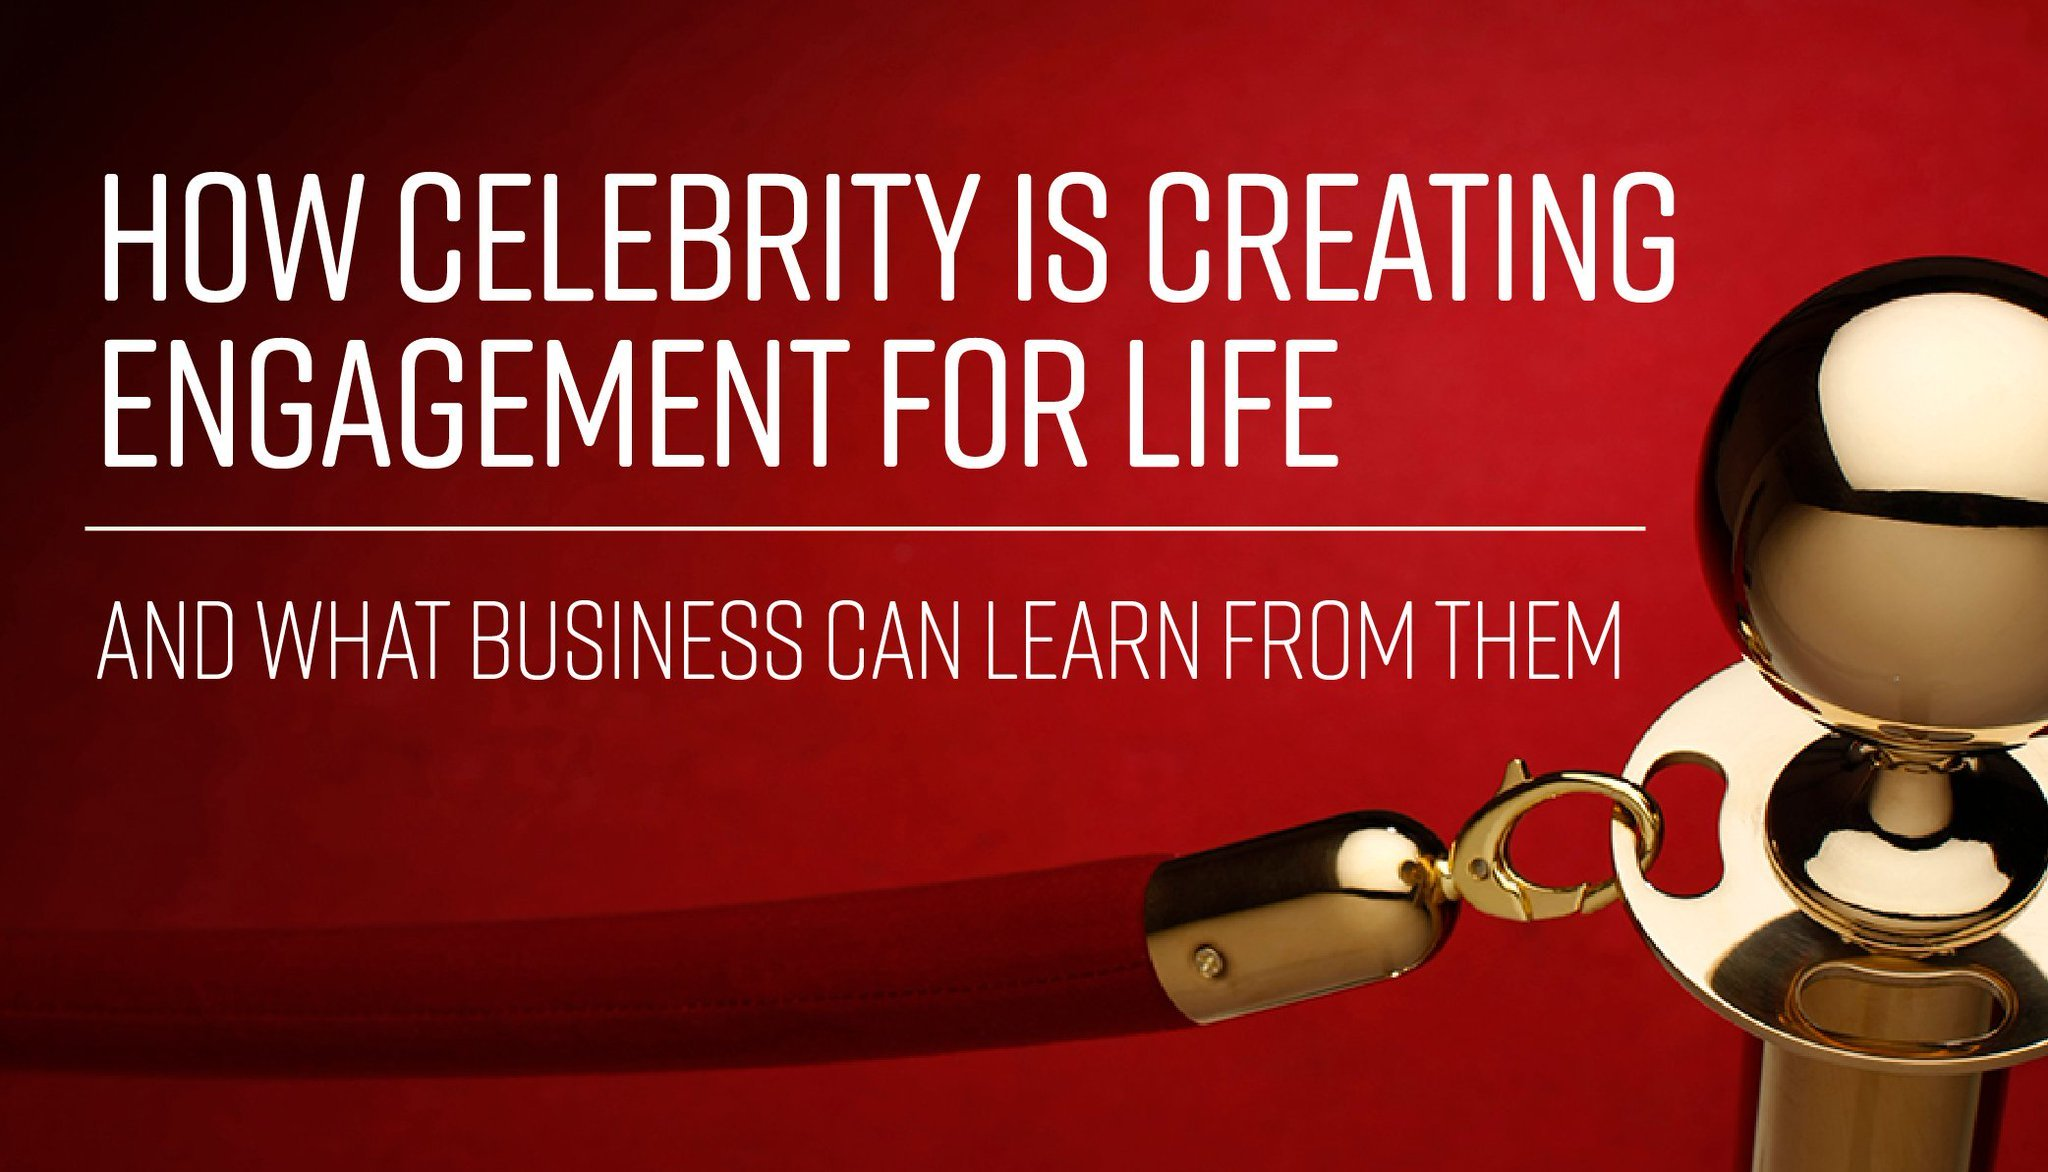 How Celebrities are Creating Engagement and What Business Can Learn From Them